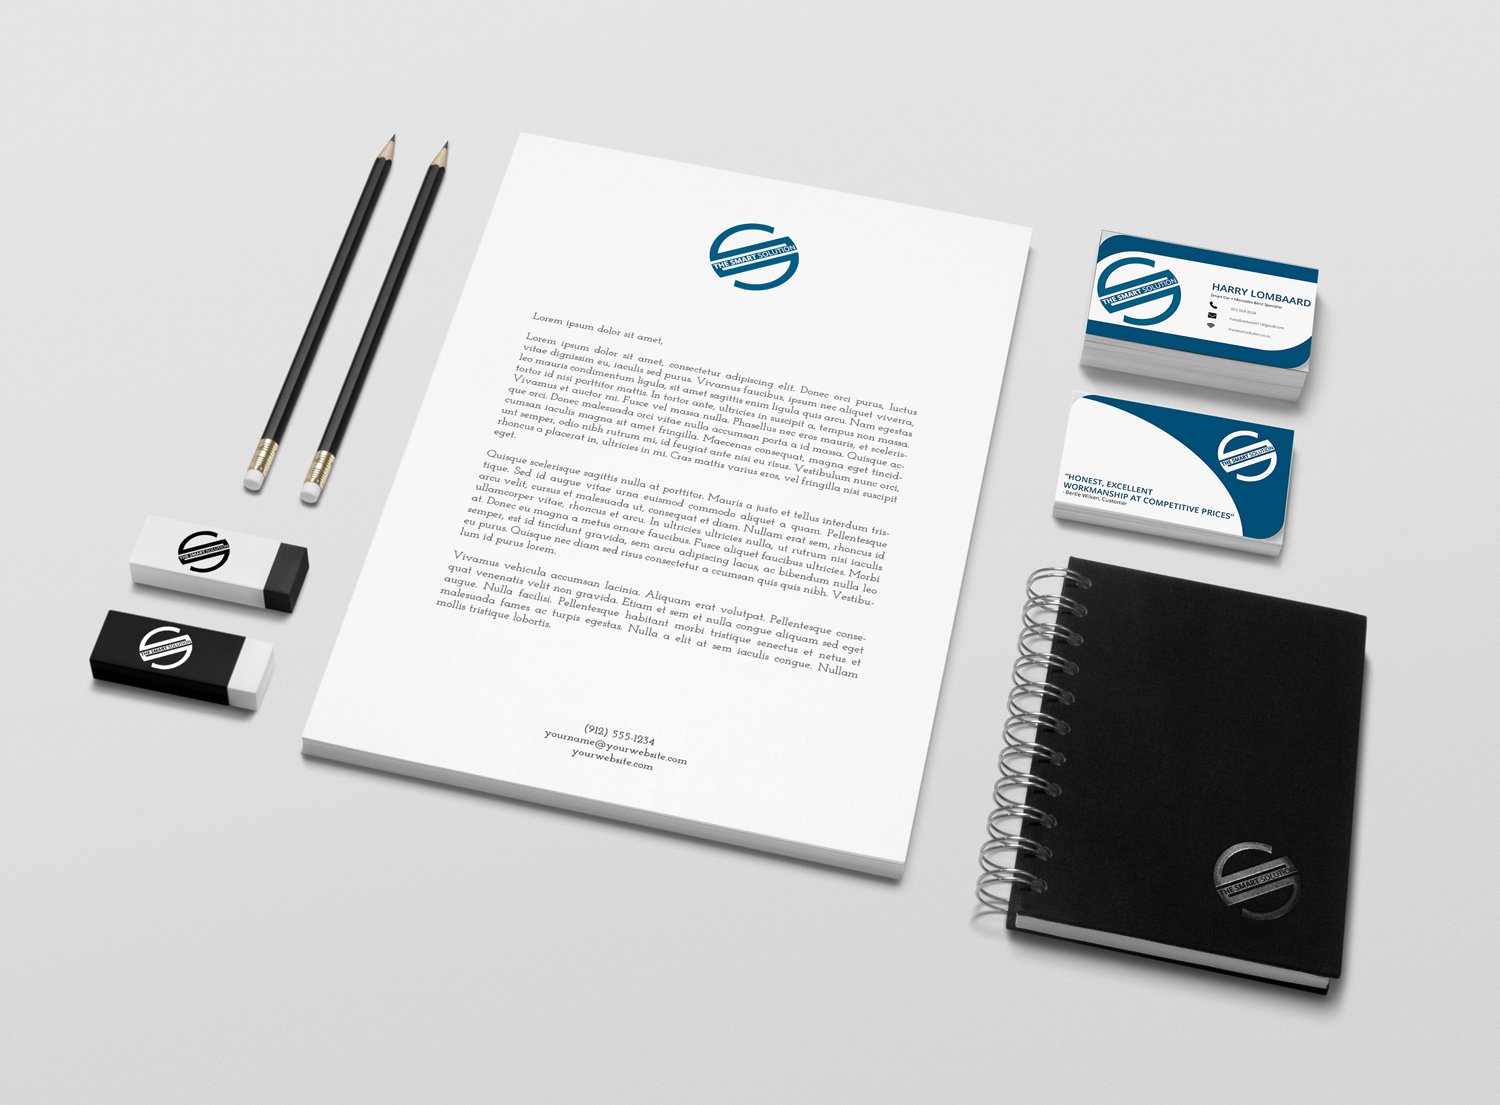 Branding-Identity-Mock-Up-5.png